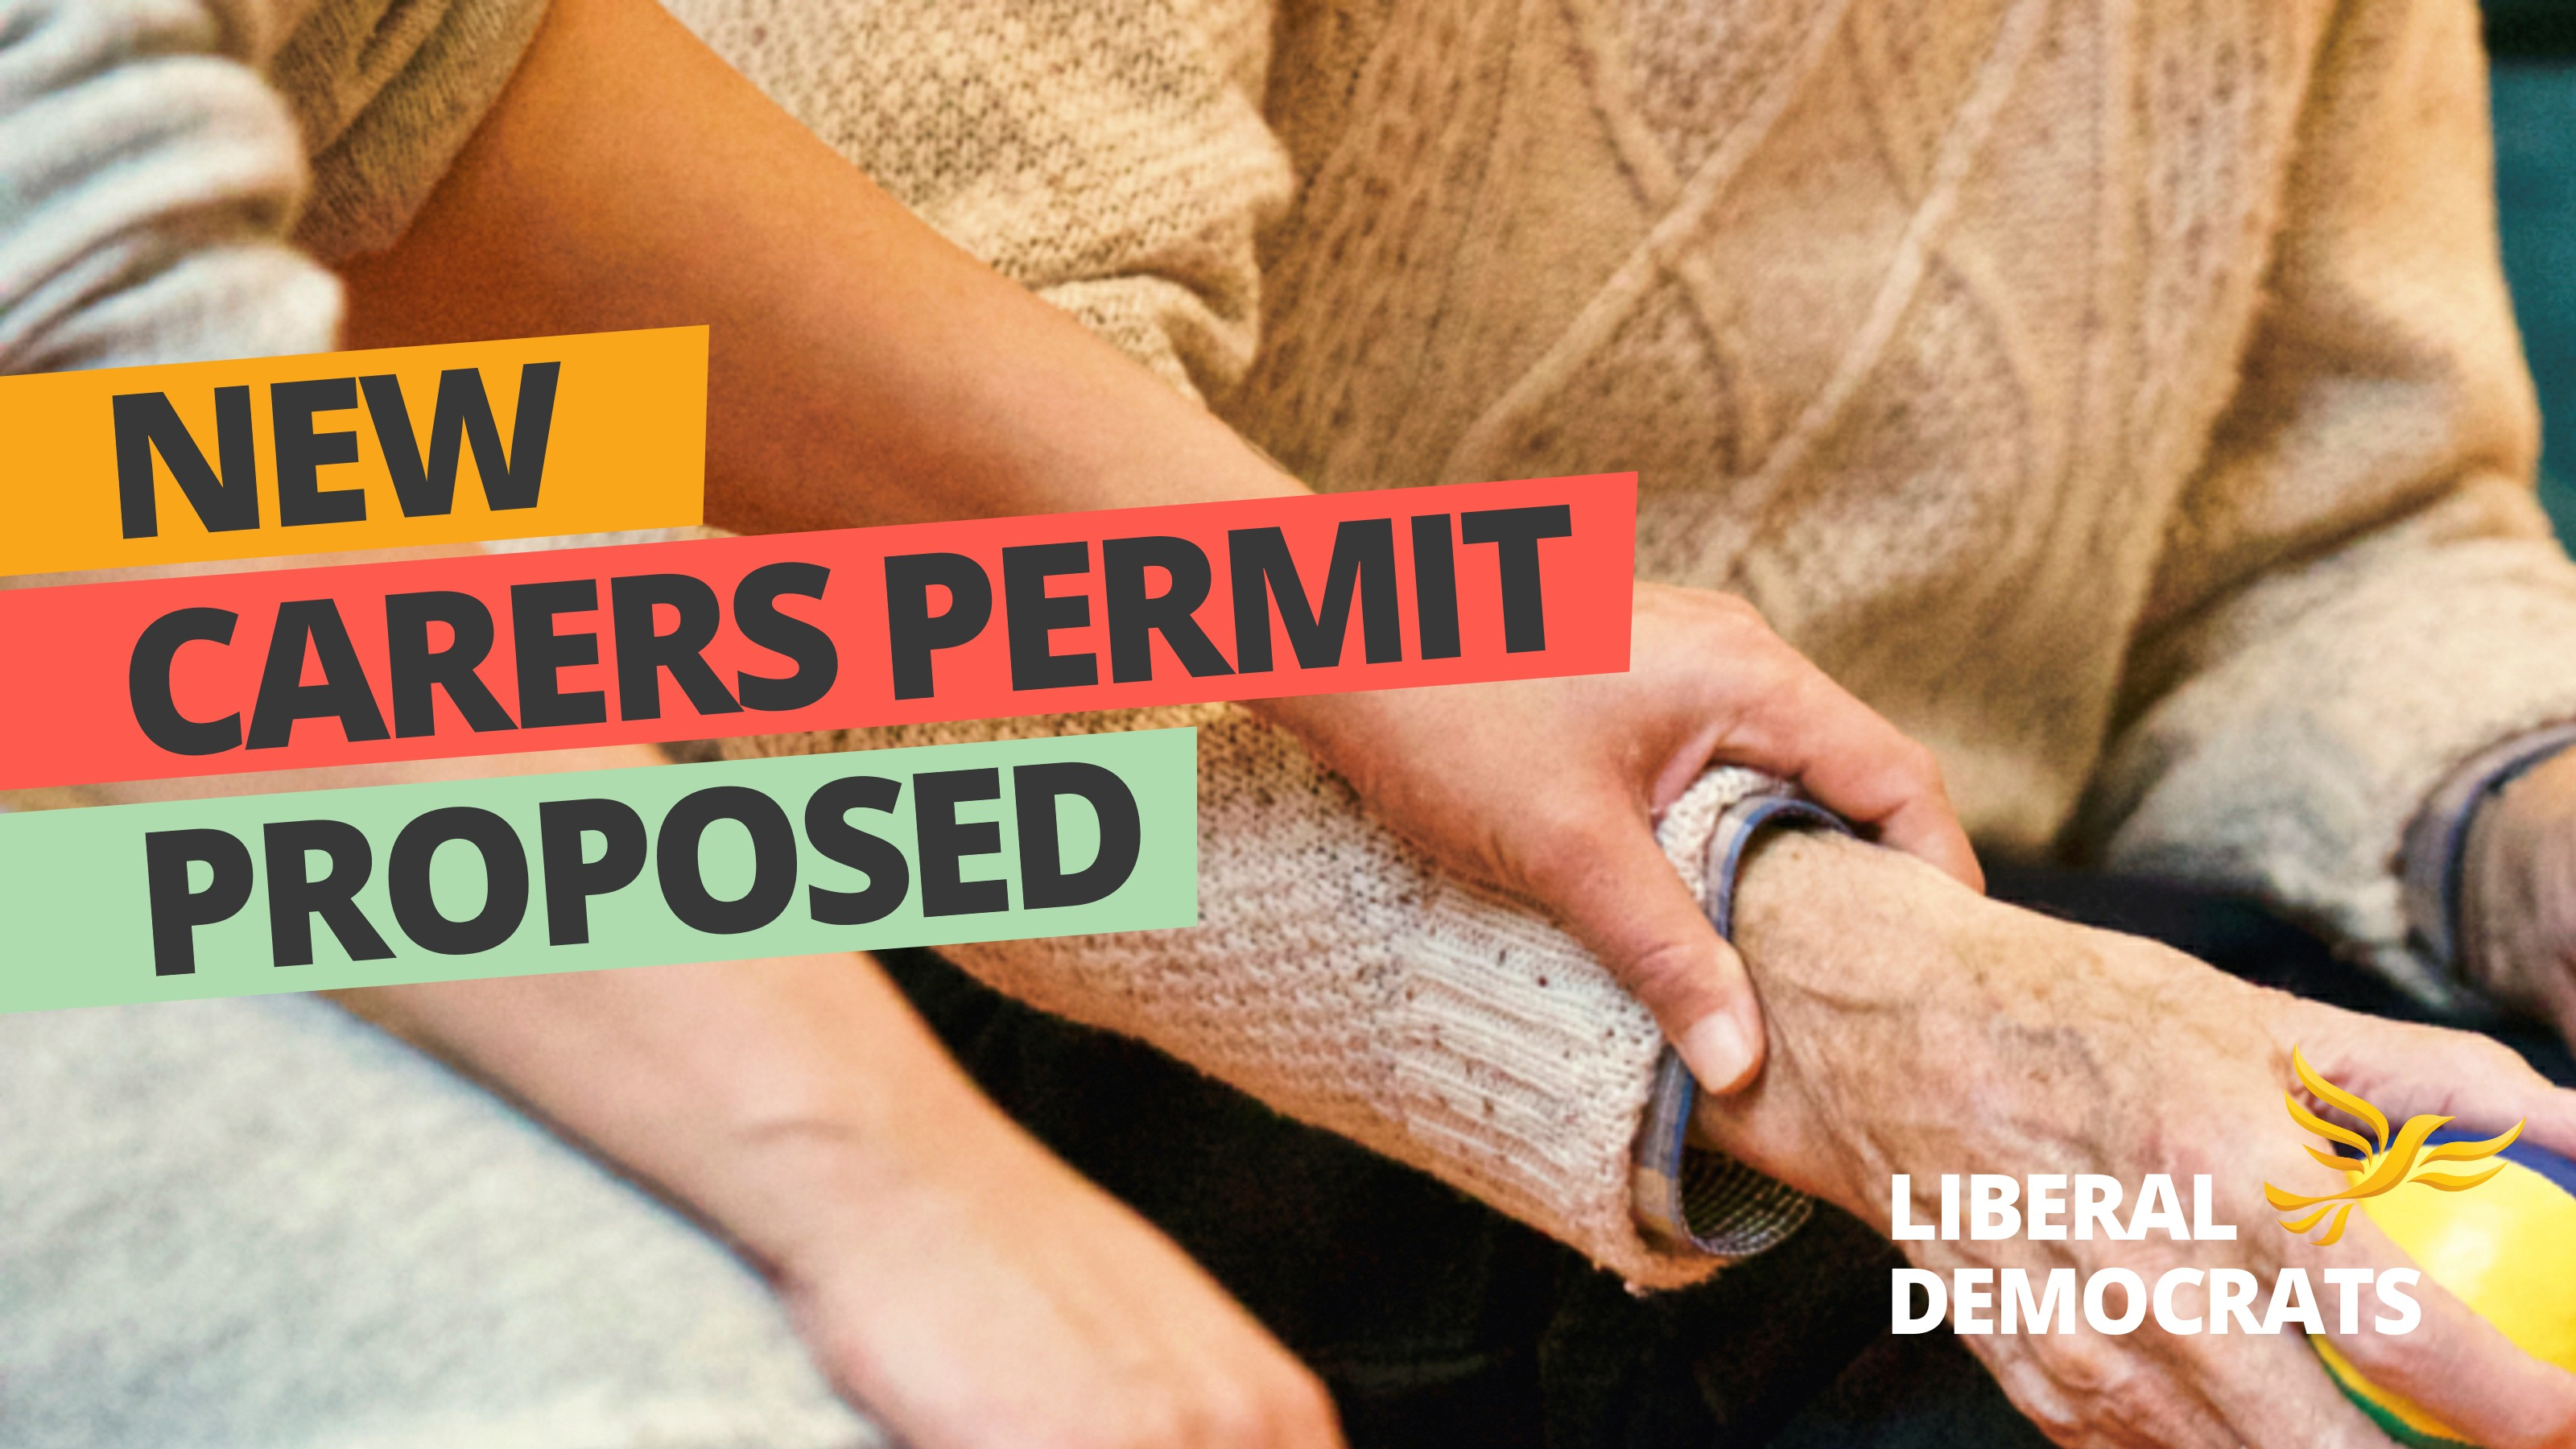 New carers permit proposed